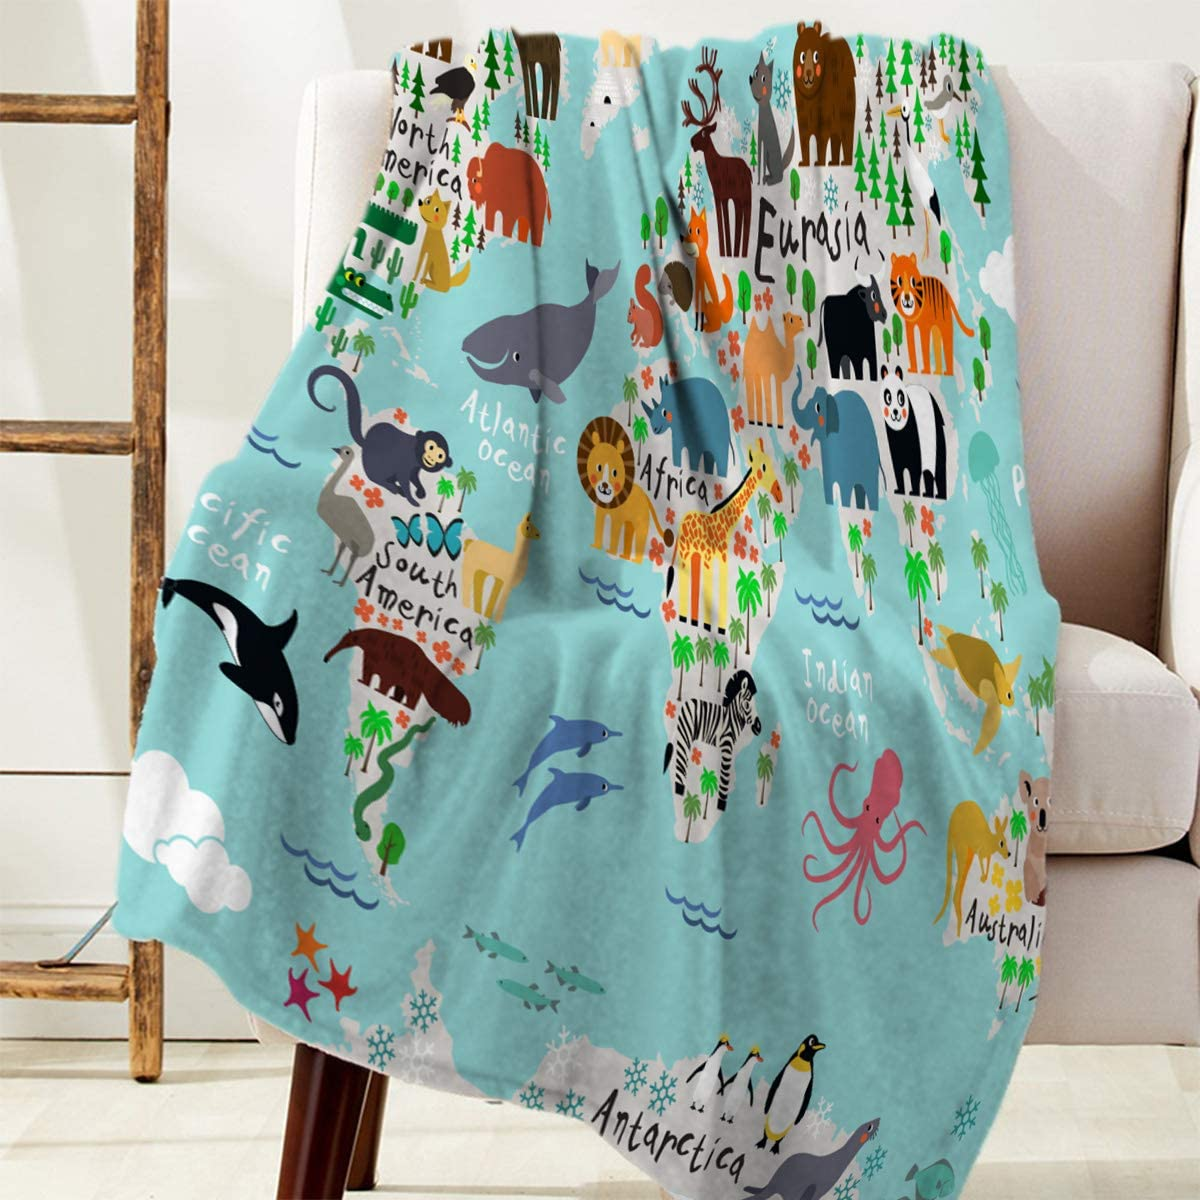 Flannel Fleece Blankets Ranking integrated 1st place Animal Map of Children World for Al sold out. The and